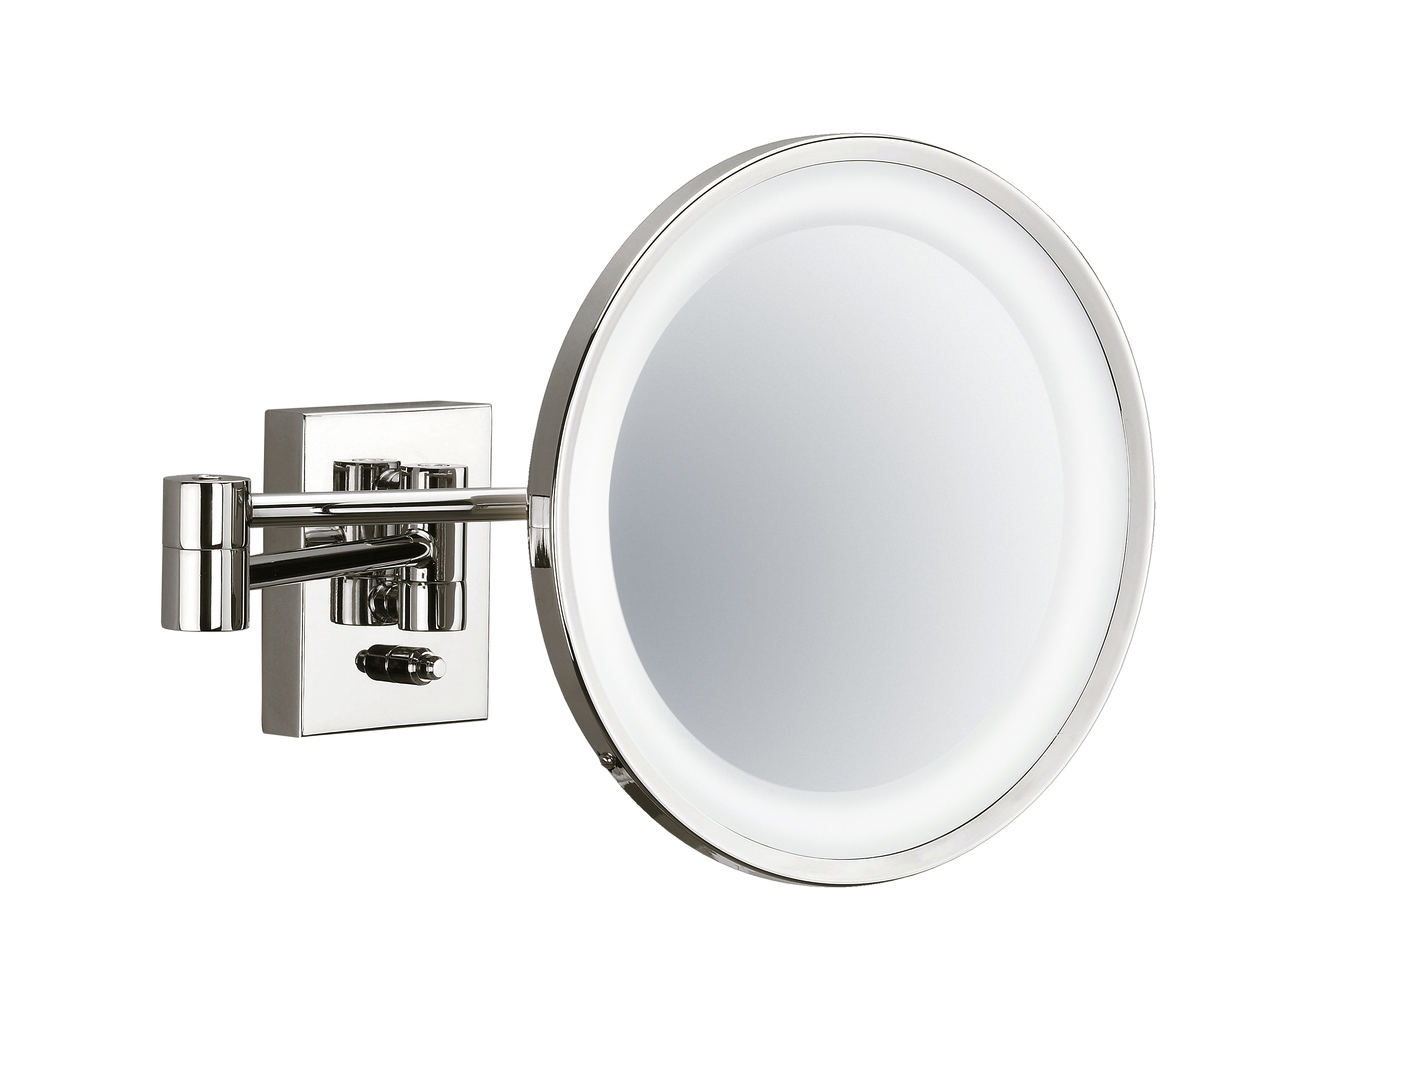 Decor Walther 0102030 DW-BS 40 PL Cosmetic Mirror Illuminated - Nickel Polished